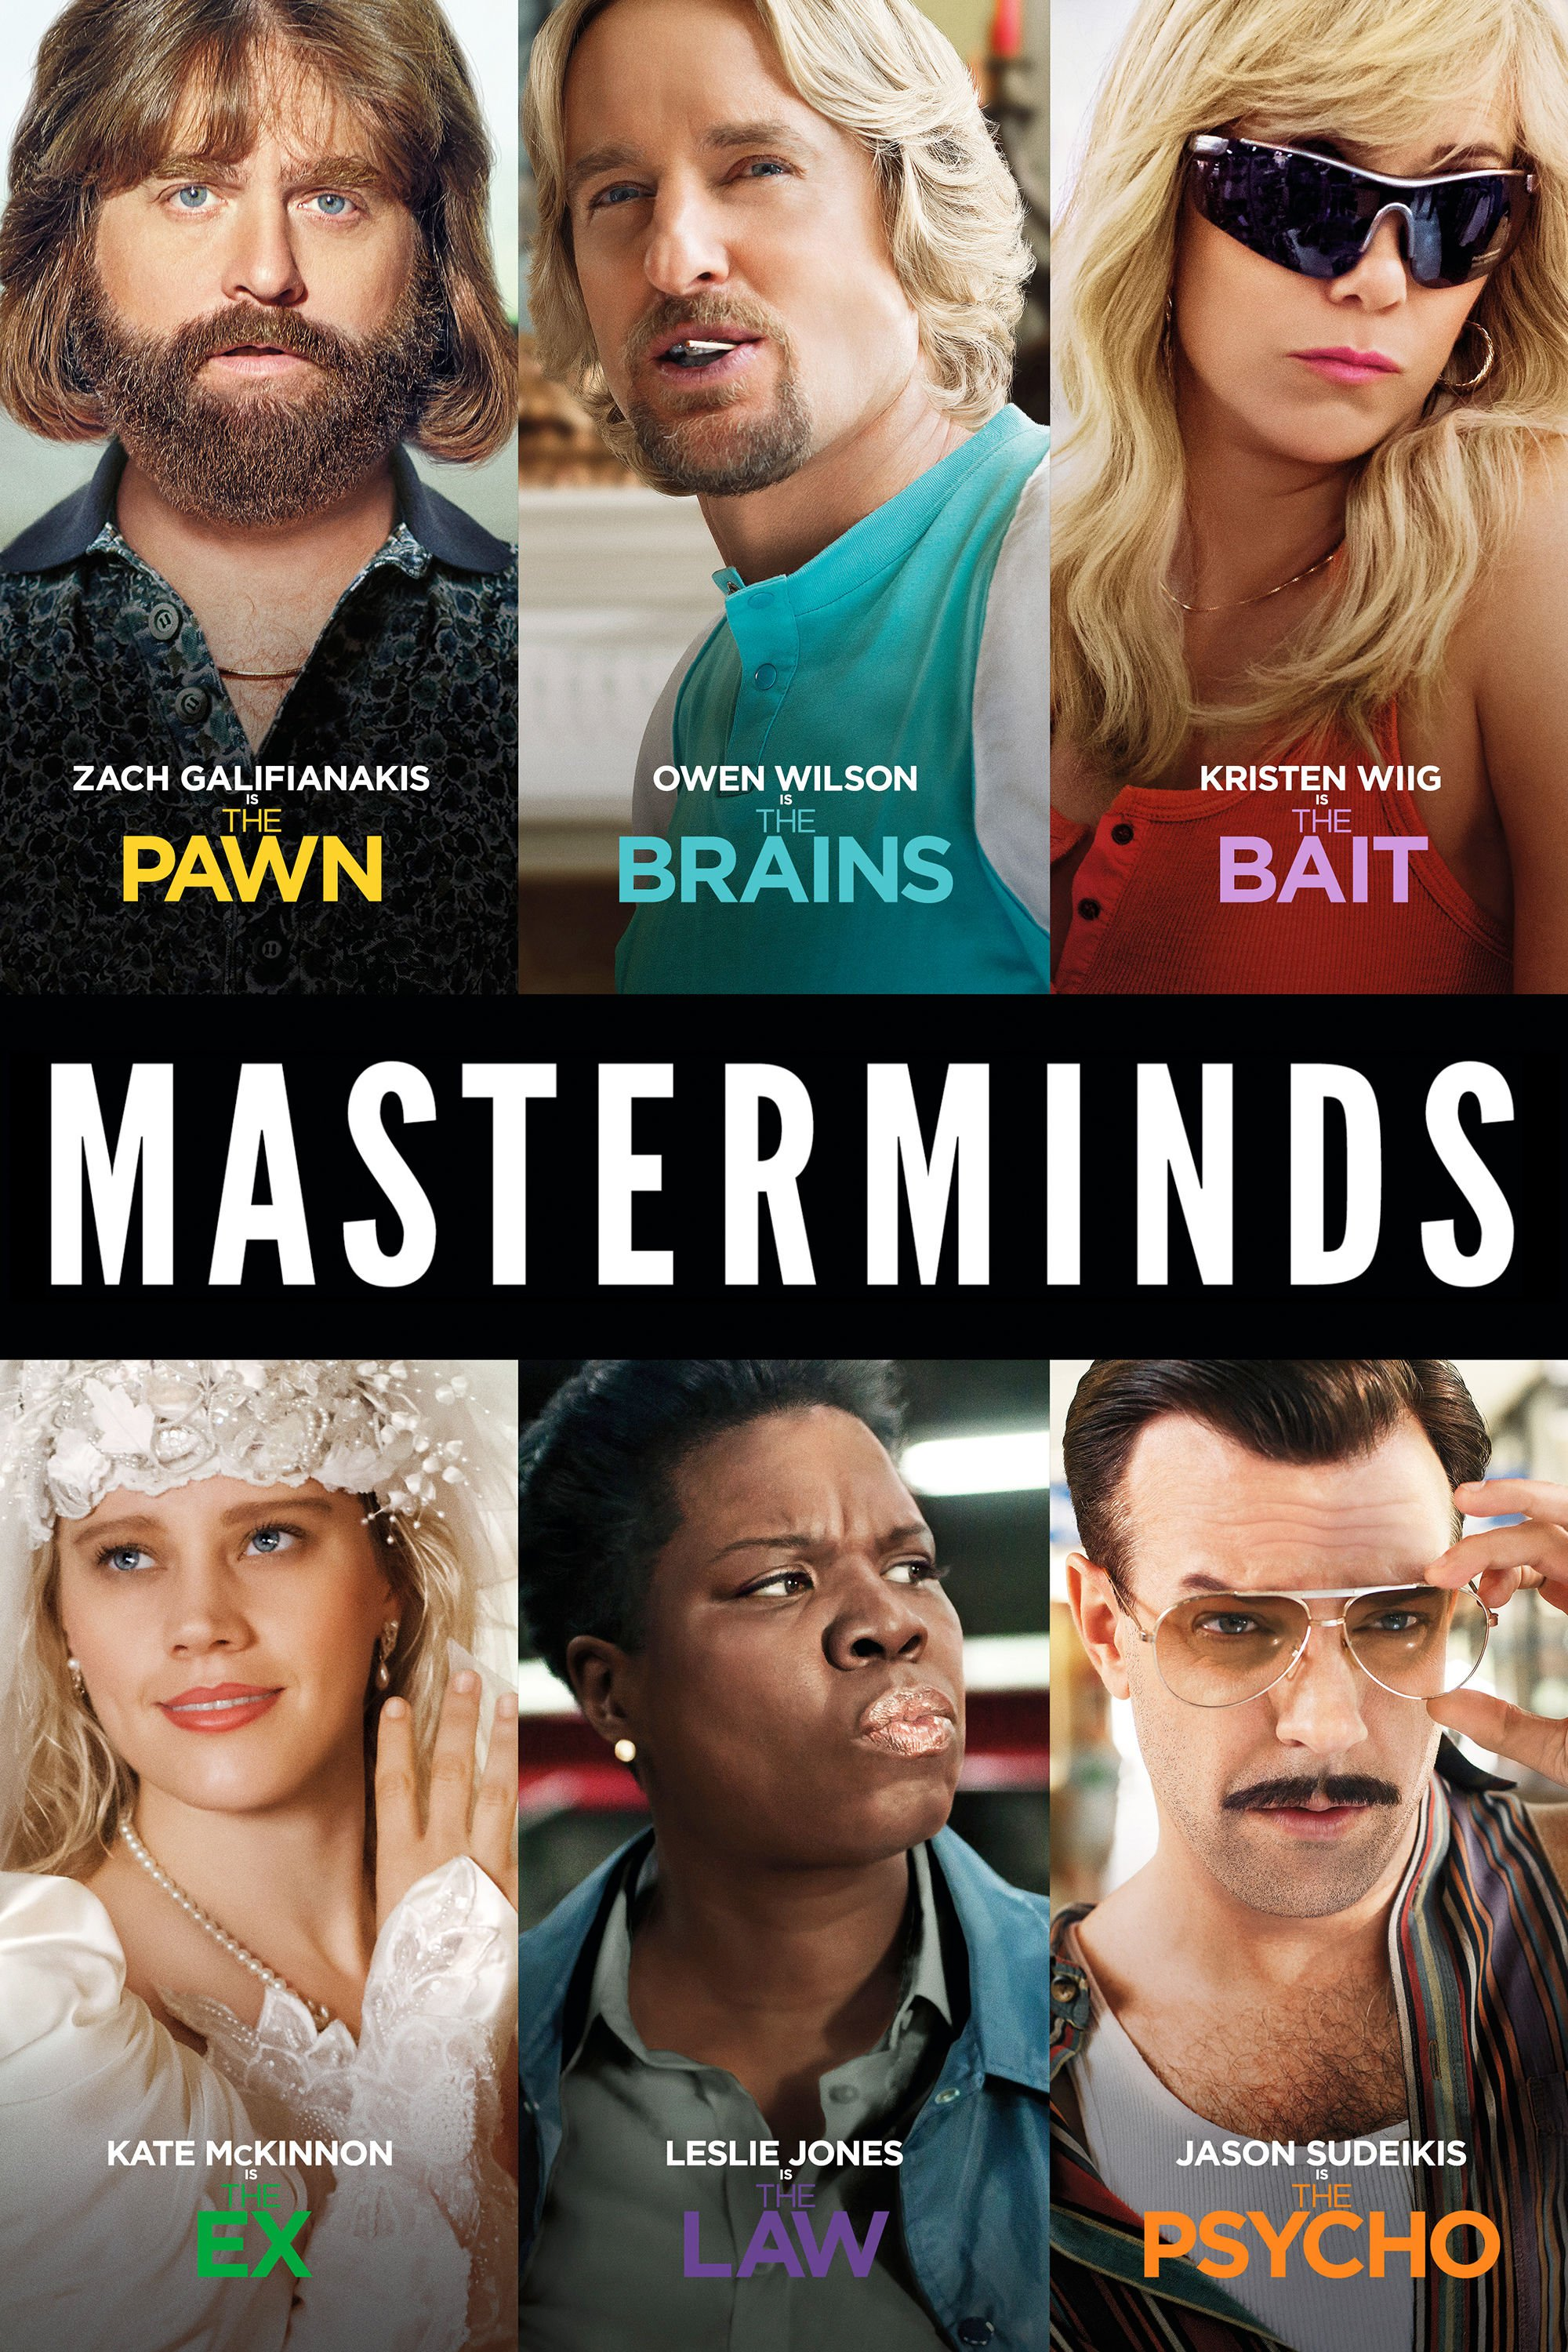 masterminds-filming-locations-poster